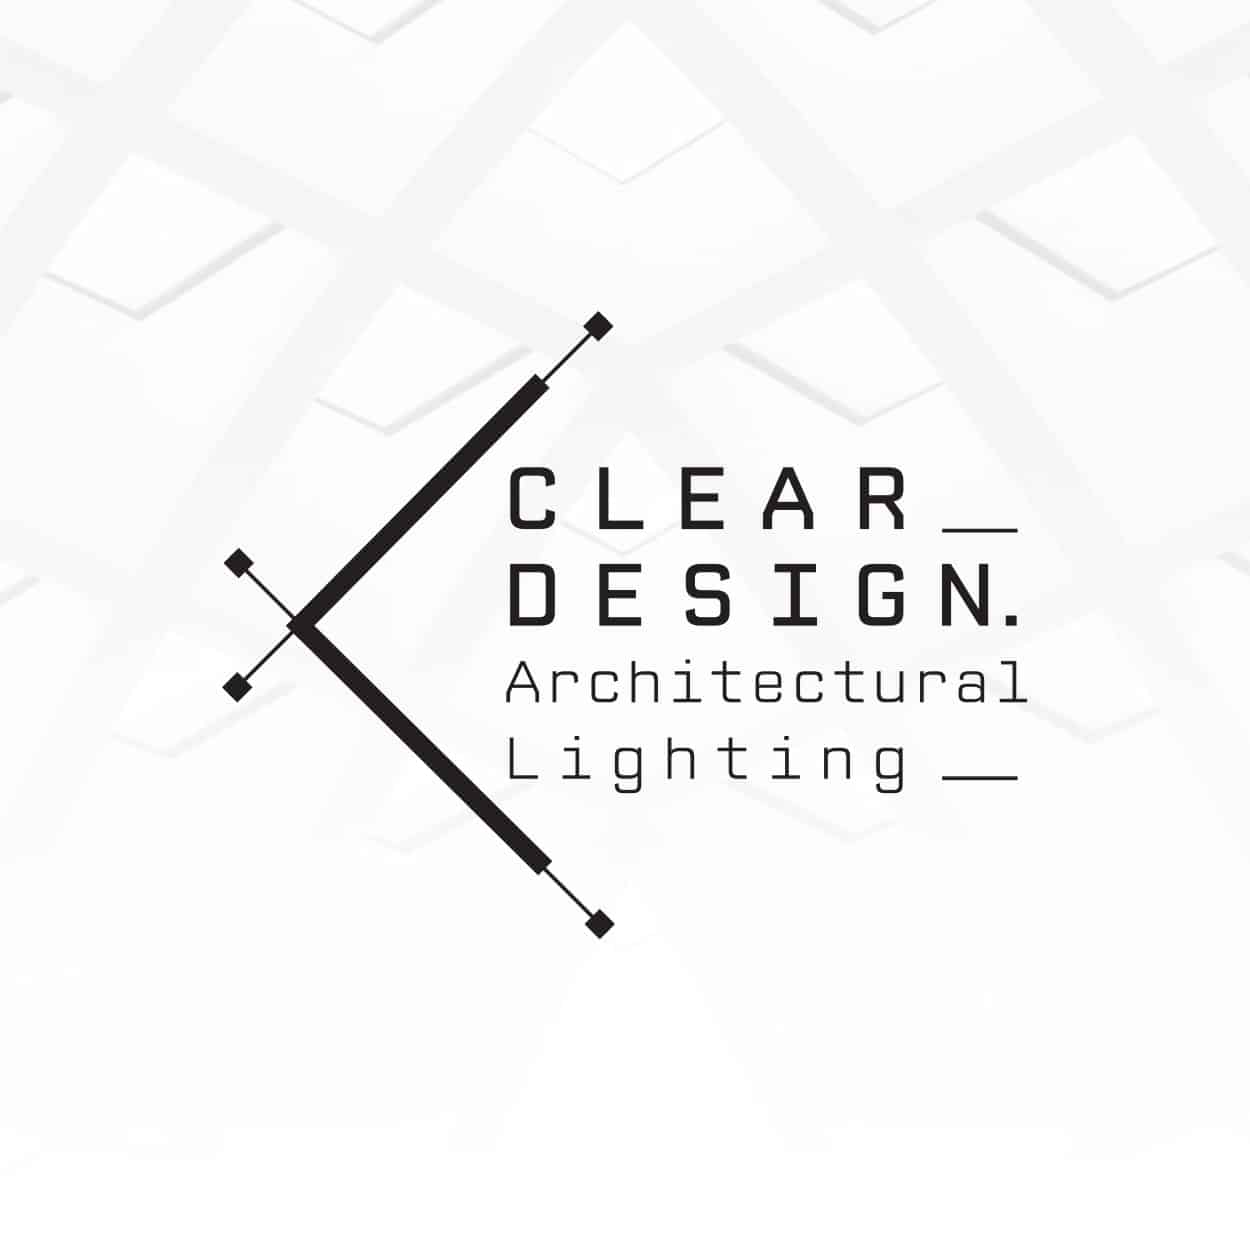 Let's Design Studio Nadia Ornstein - Clear Led Design Lightning's architecture Branding Visual Language